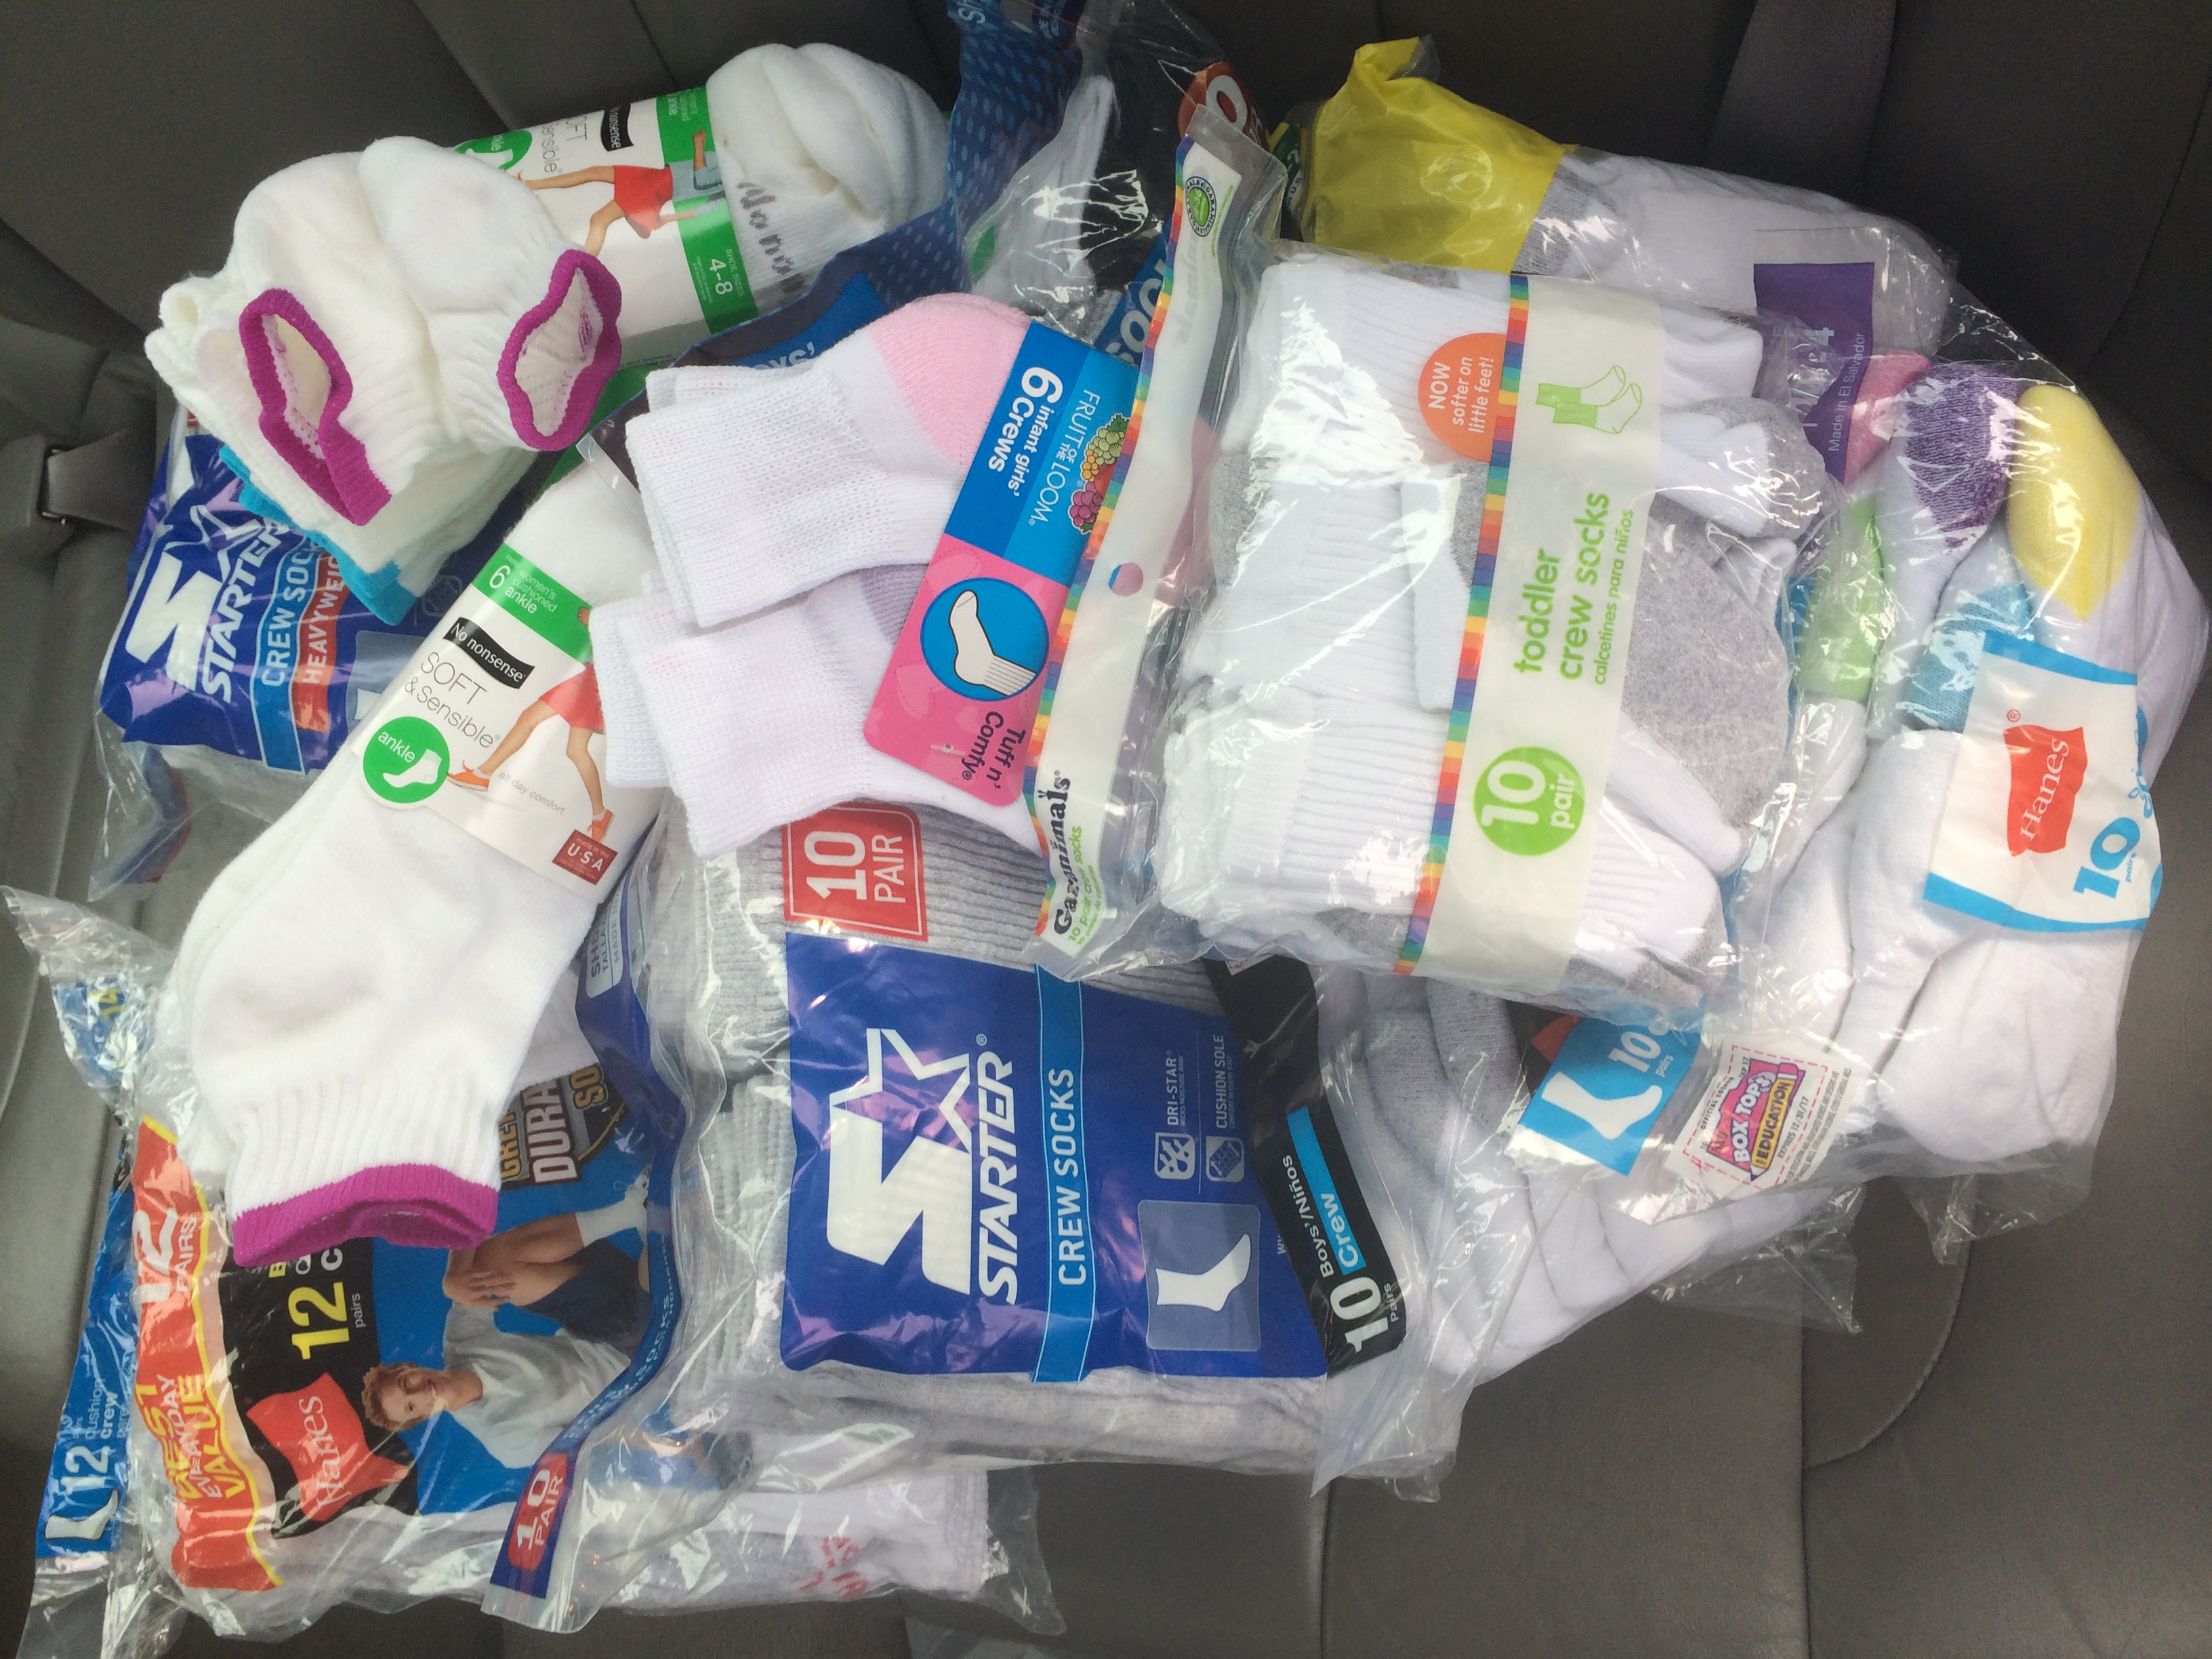 Socks for Northwest Children's Outreach – Why?